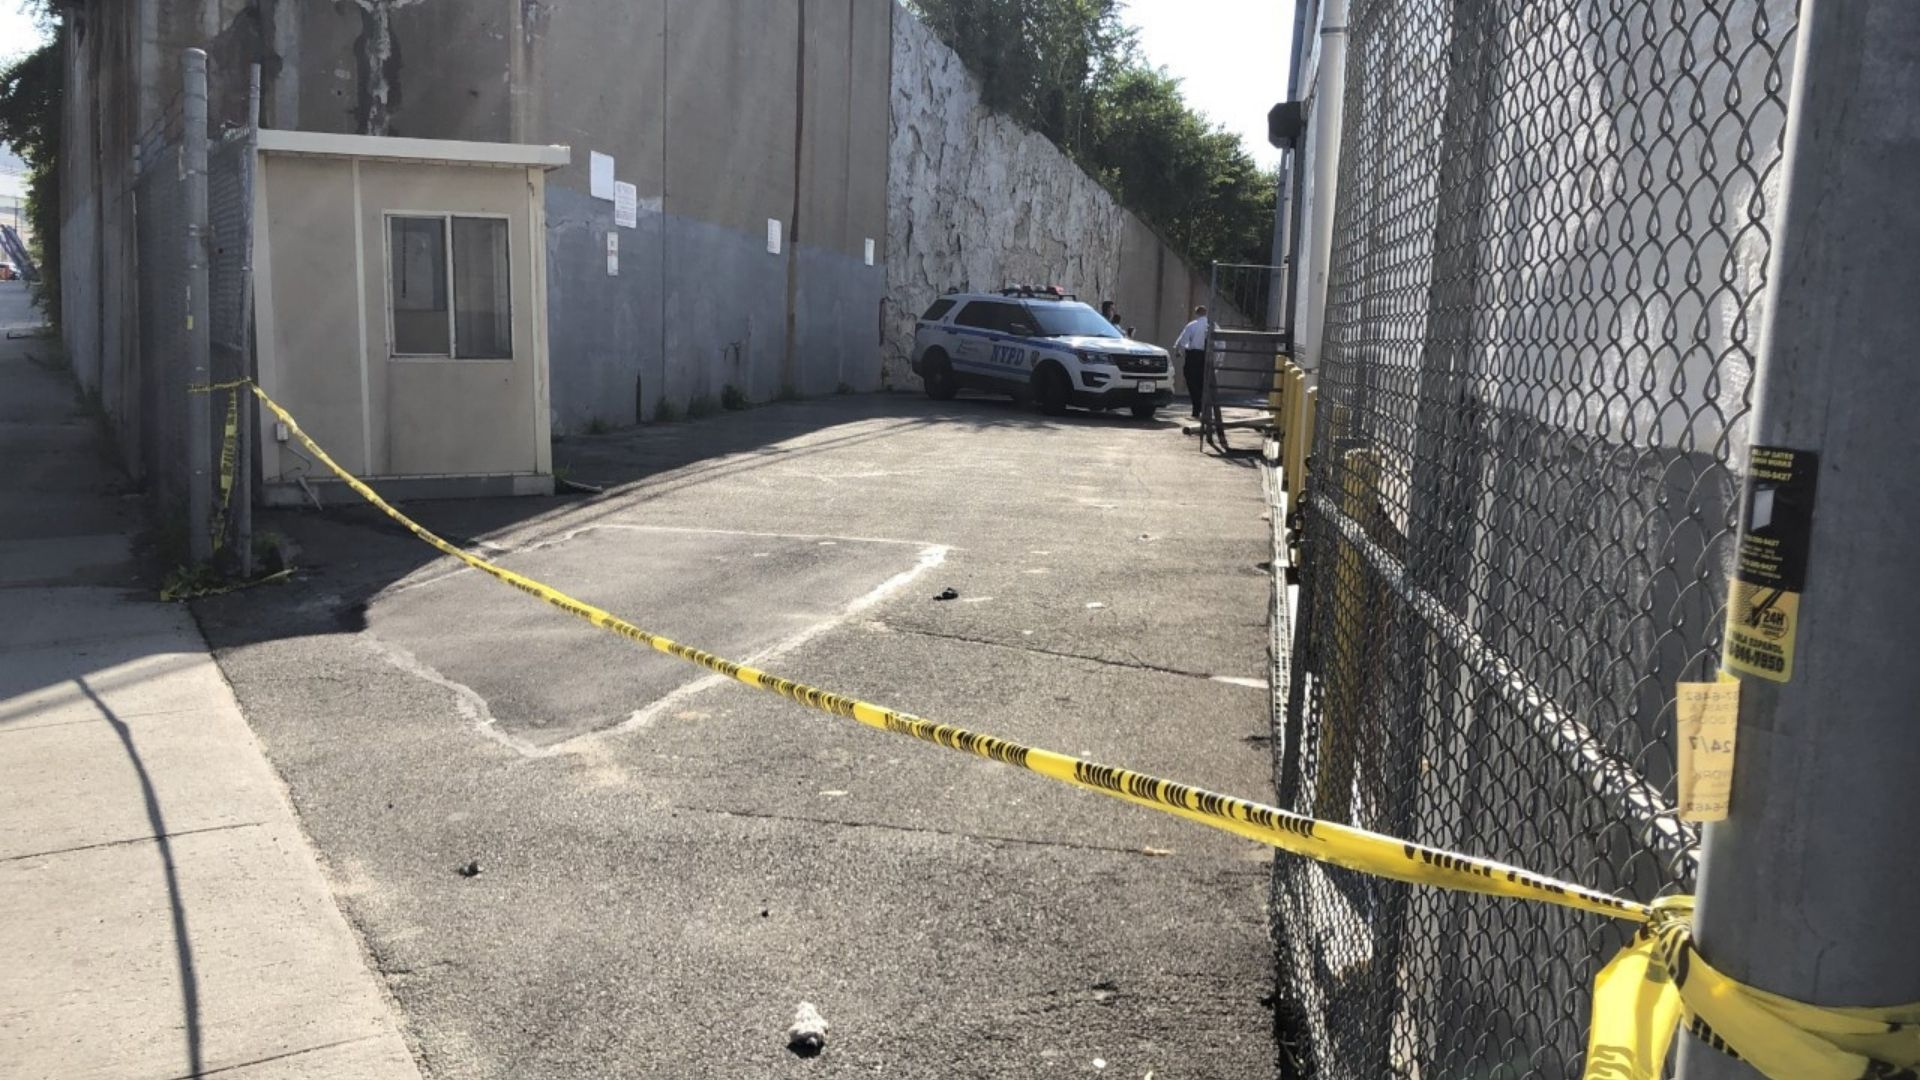 Man's body found wrapped in tarp behind Queens business